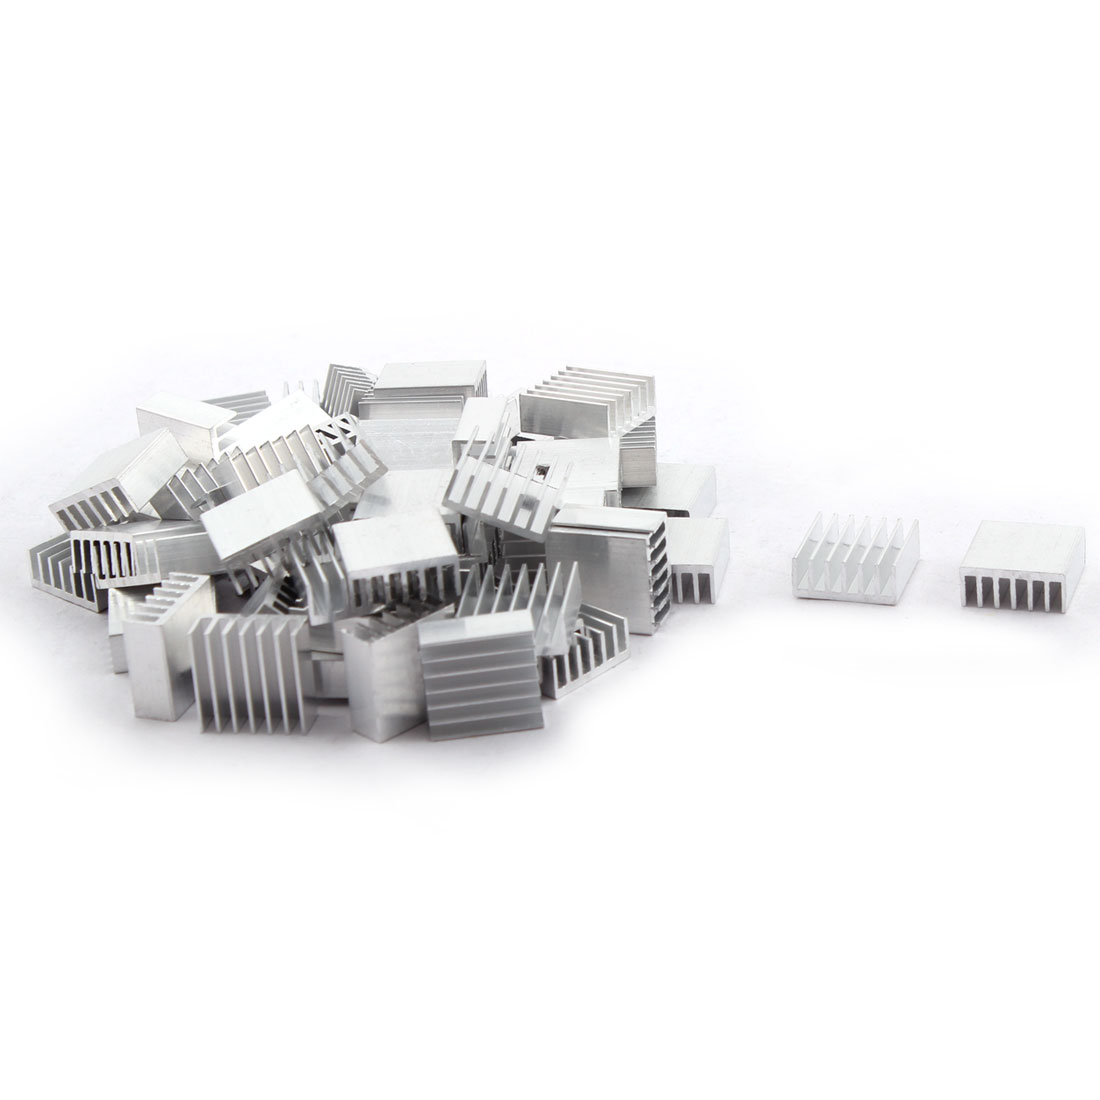 14mm x 14mm x 6mm Aluminum Radiating Cooler Cooling Fin Heatsink 65 PCS